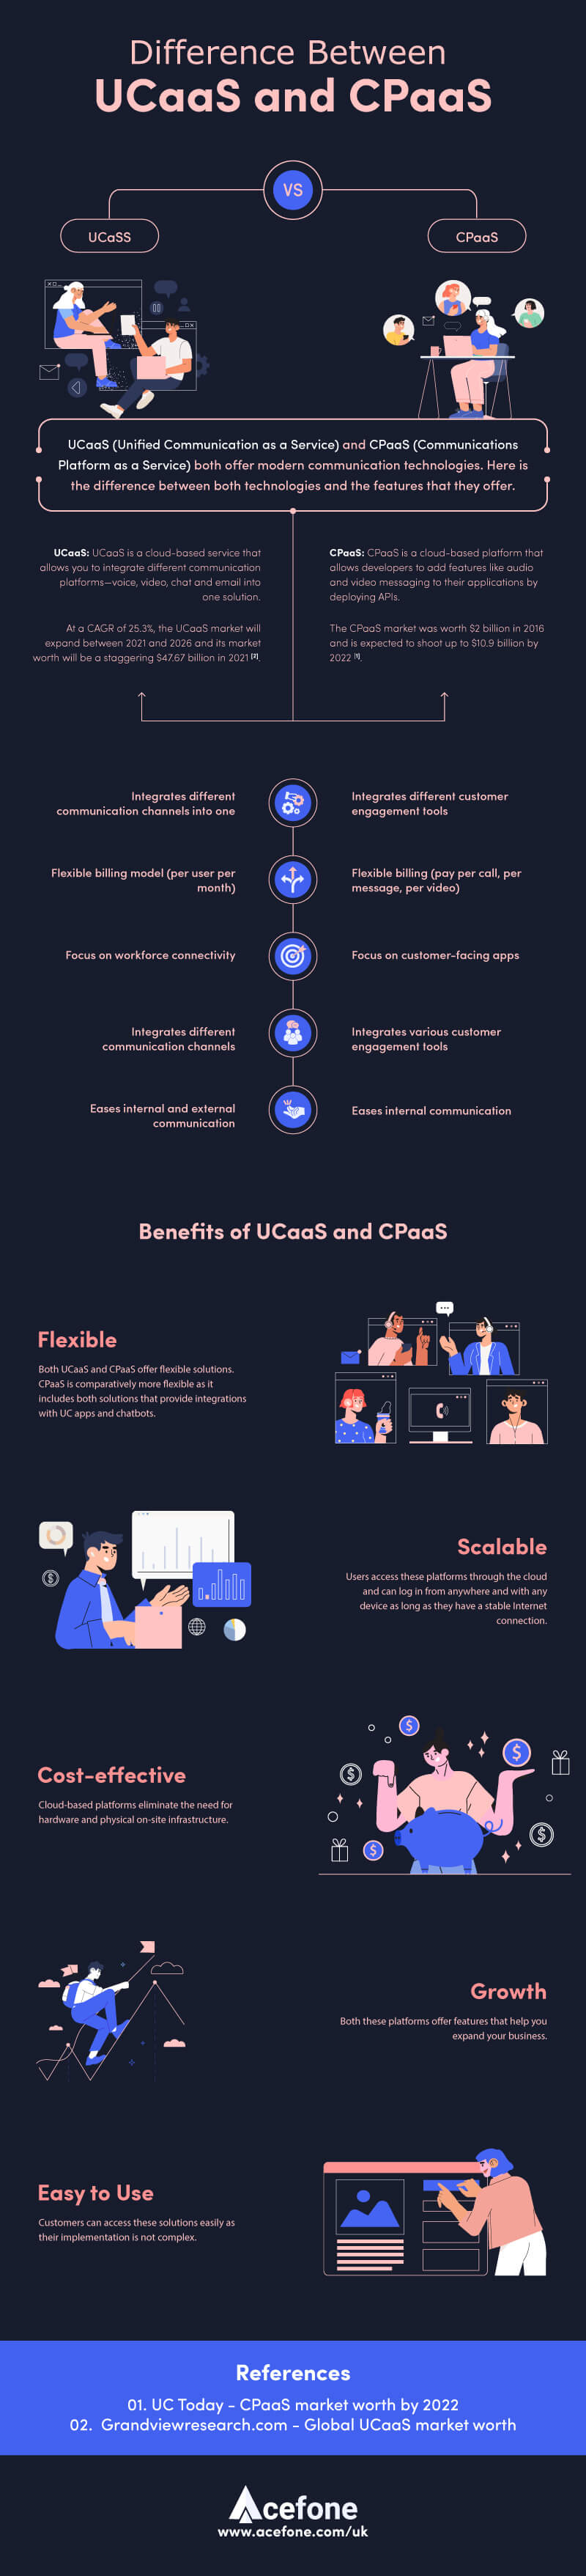 Difference Between UCaaS and CPaaS[Infographic]